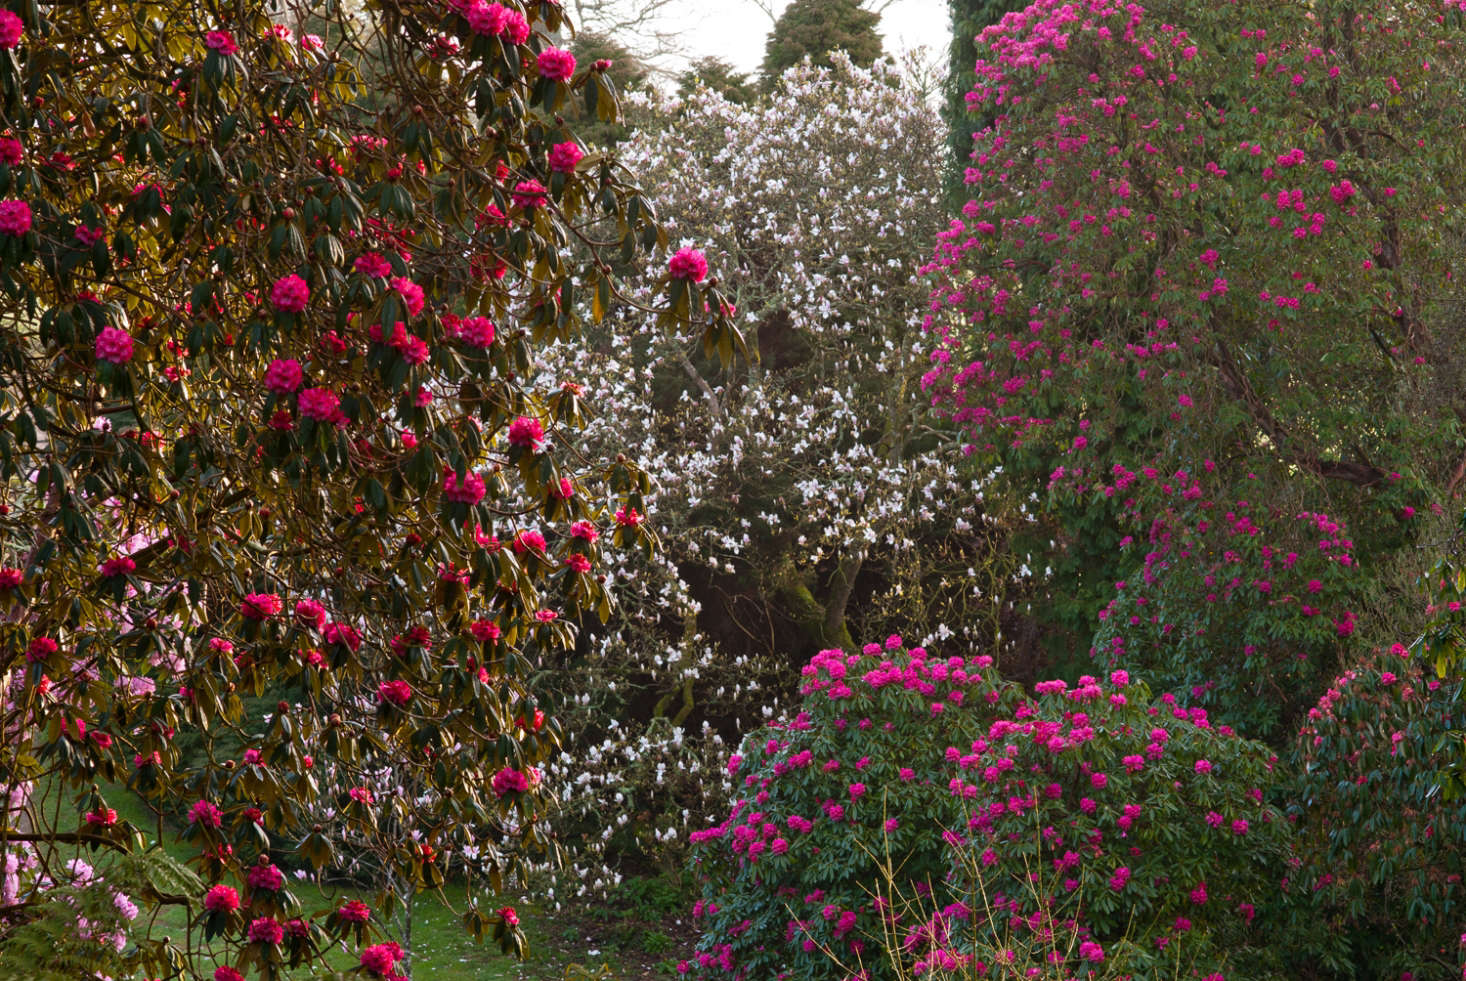 Super-sized rhododendrons in Cornwall.